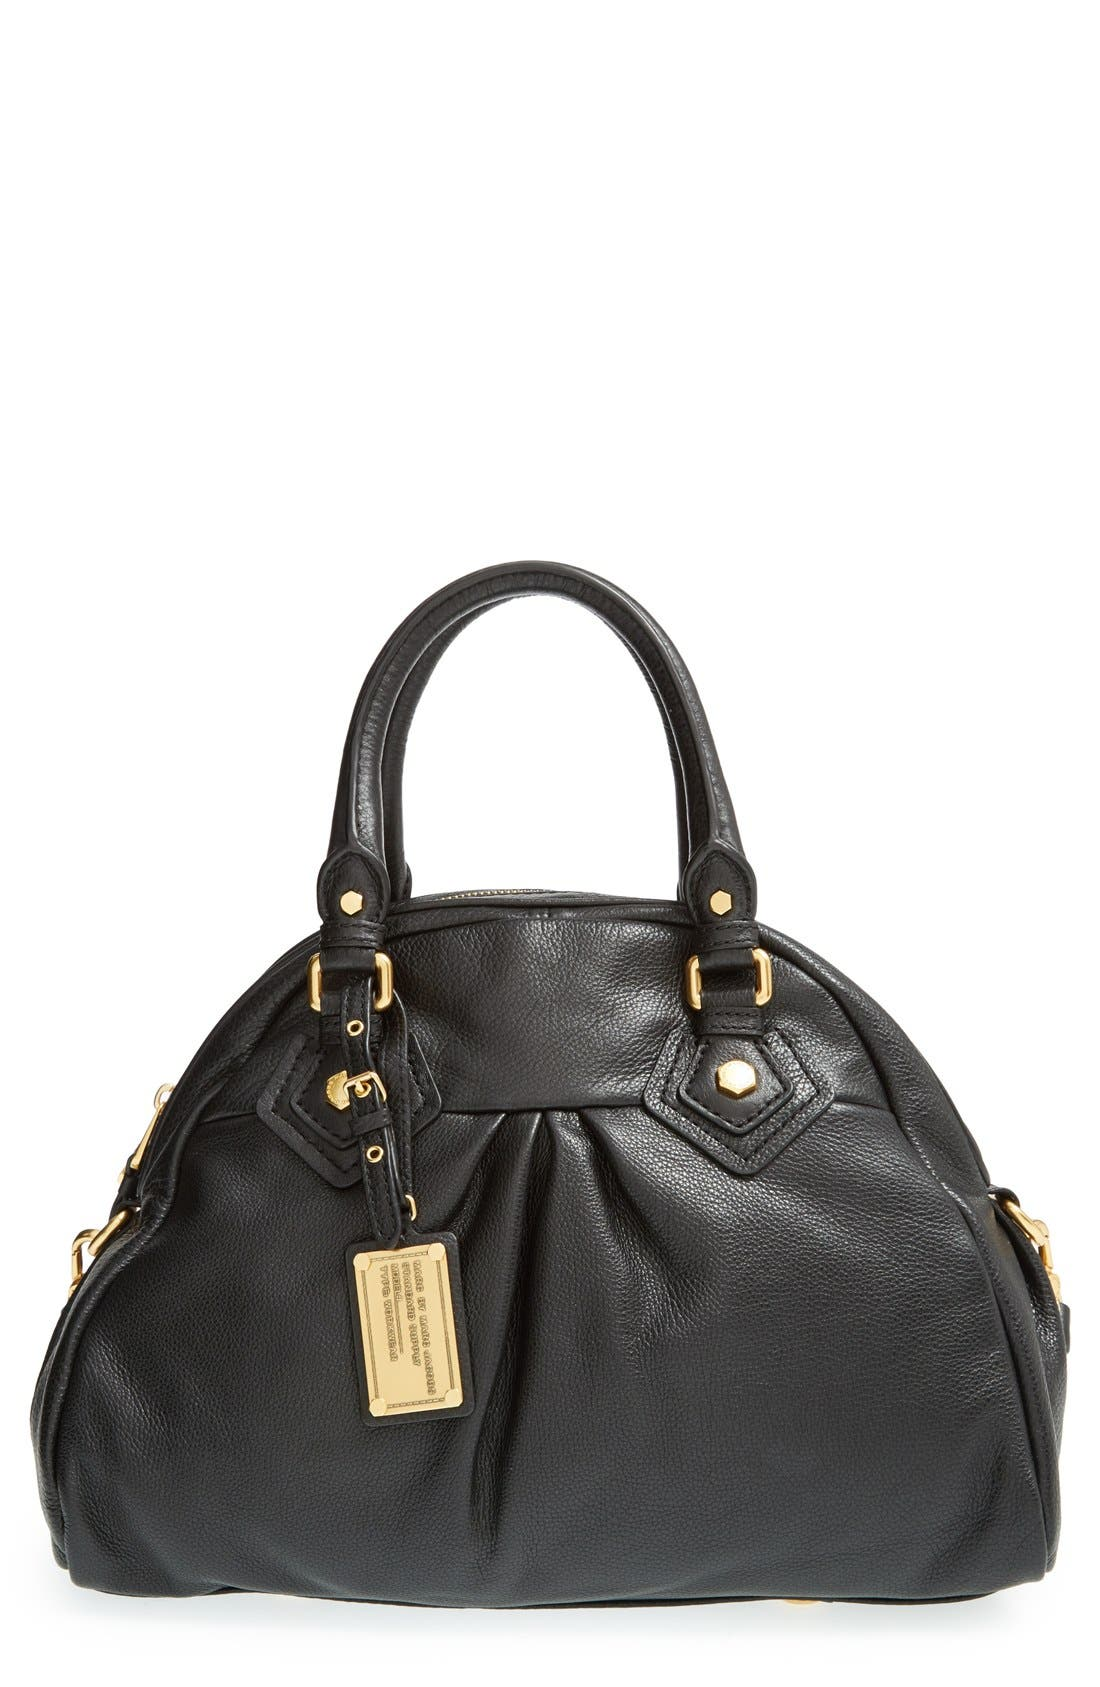 Main Image - MARC BY MARC JACOBS 'Baby Aidan' Satchel